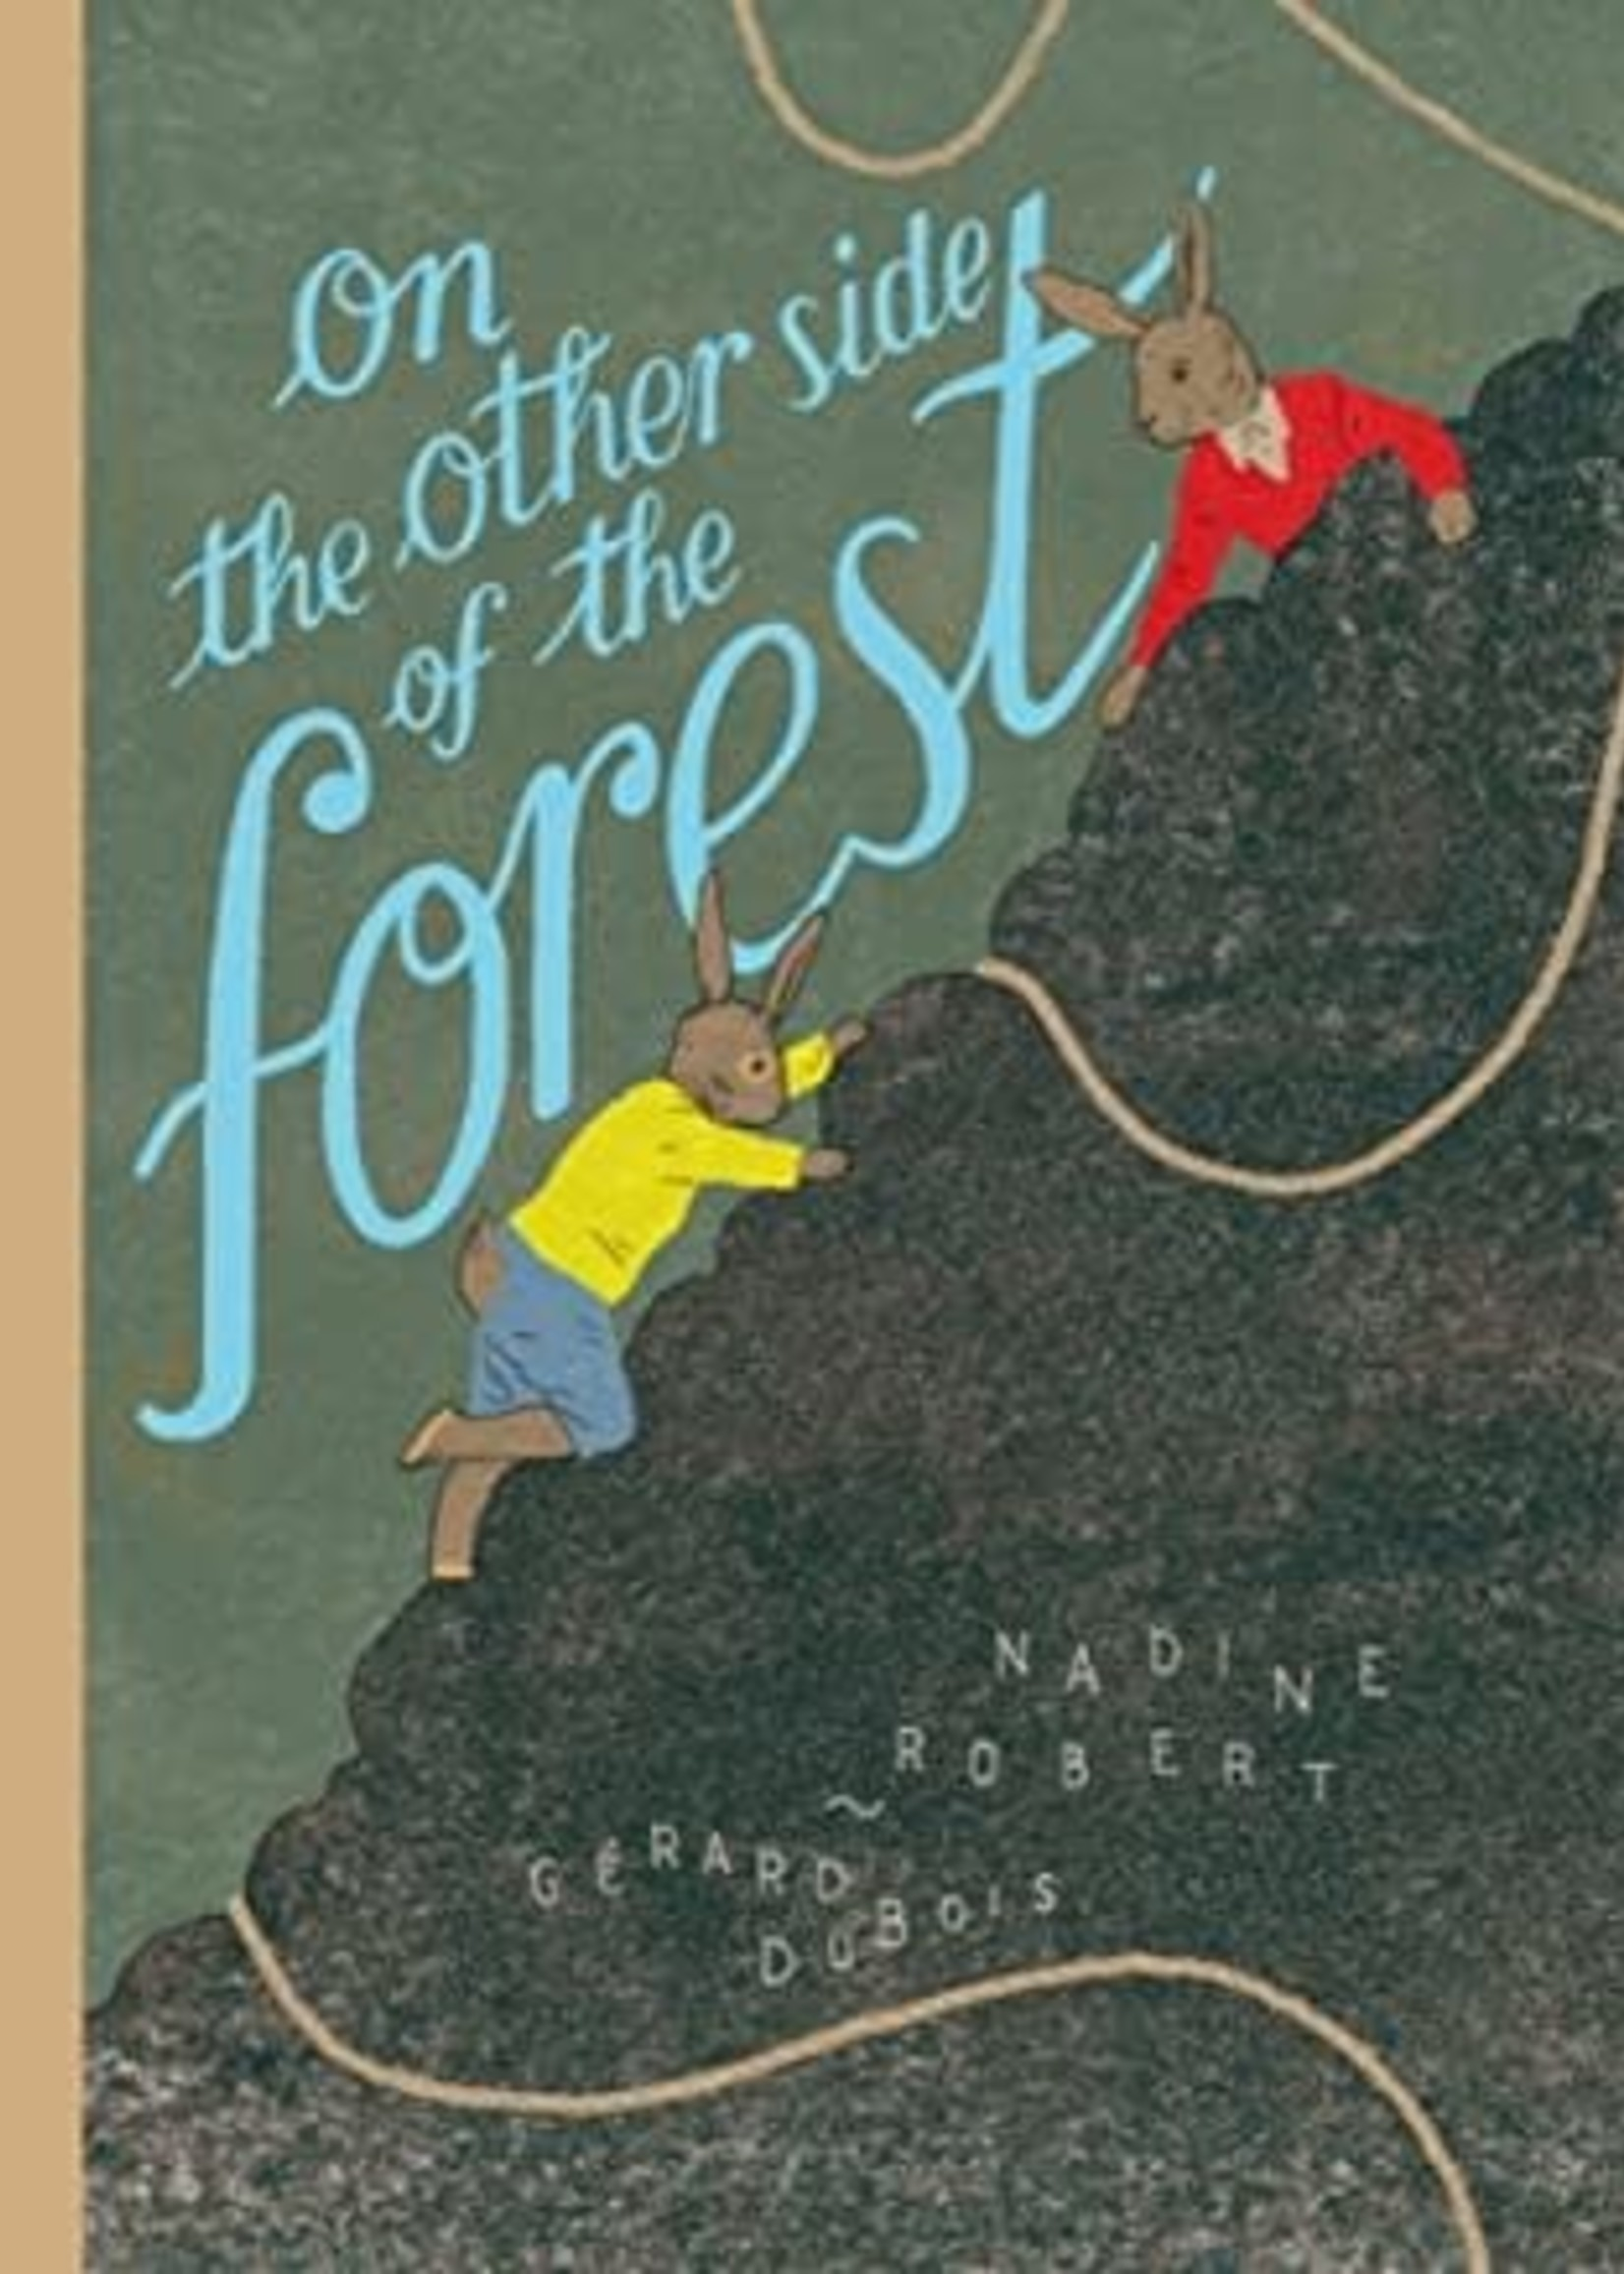 On the Other Side of the Forest by Nadine Robert,  Gérard DuBois